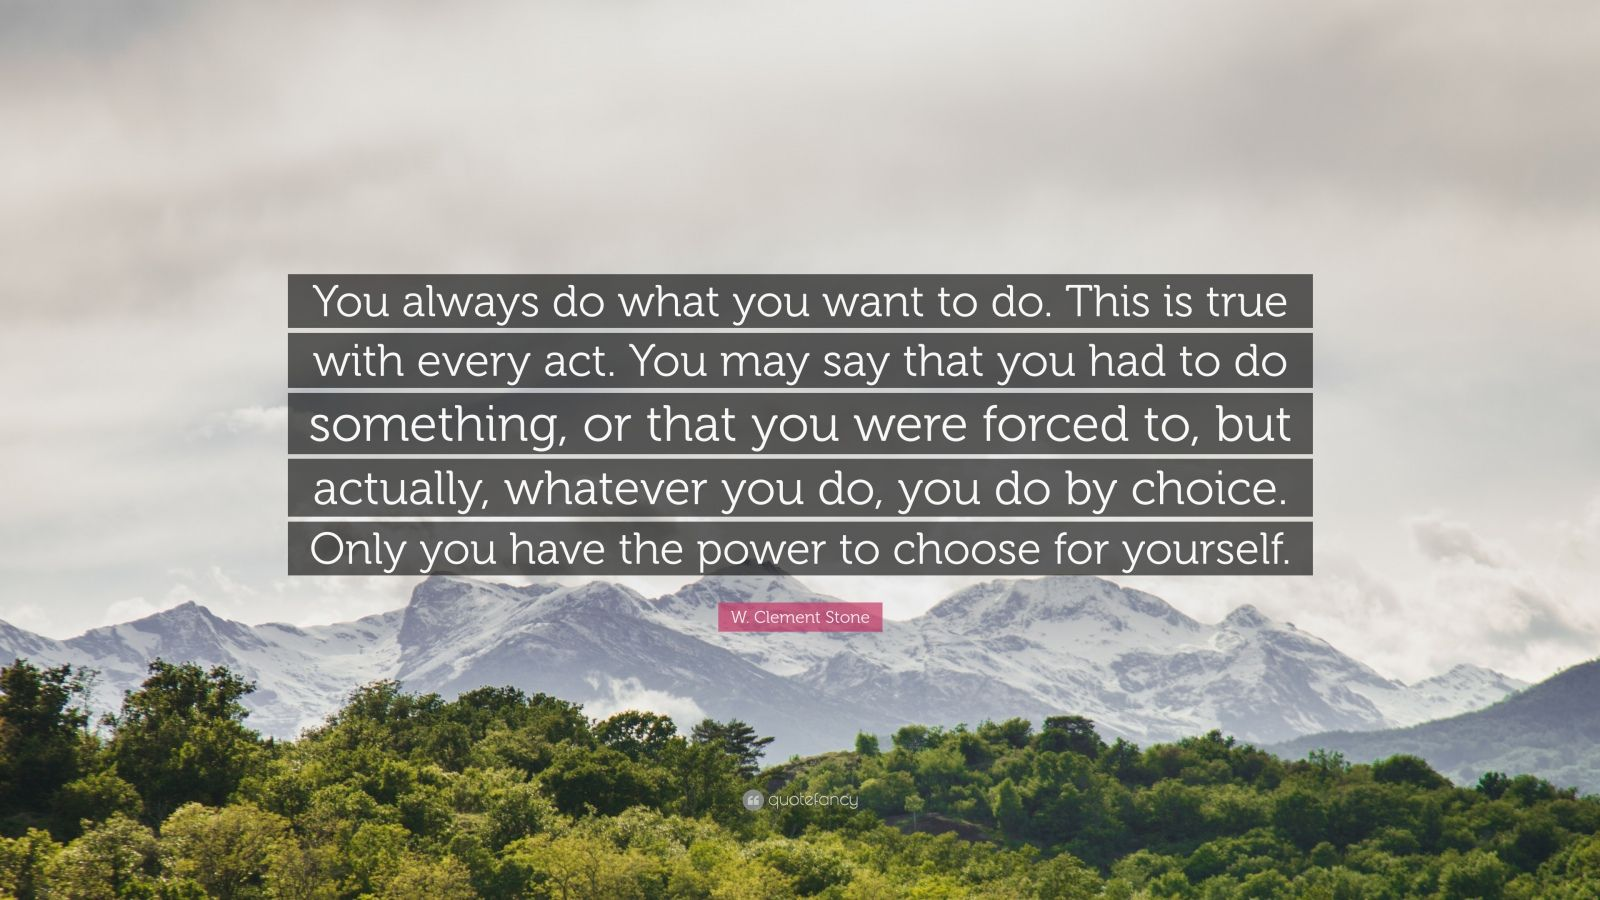 "W. Clement Stone Quote: ""You always do what you want to do. This is true with every act. You may say that you had to do something, or that you were forced to, but actually, whatever you do, you do by choice. Only you have the power to choose for yourself."""